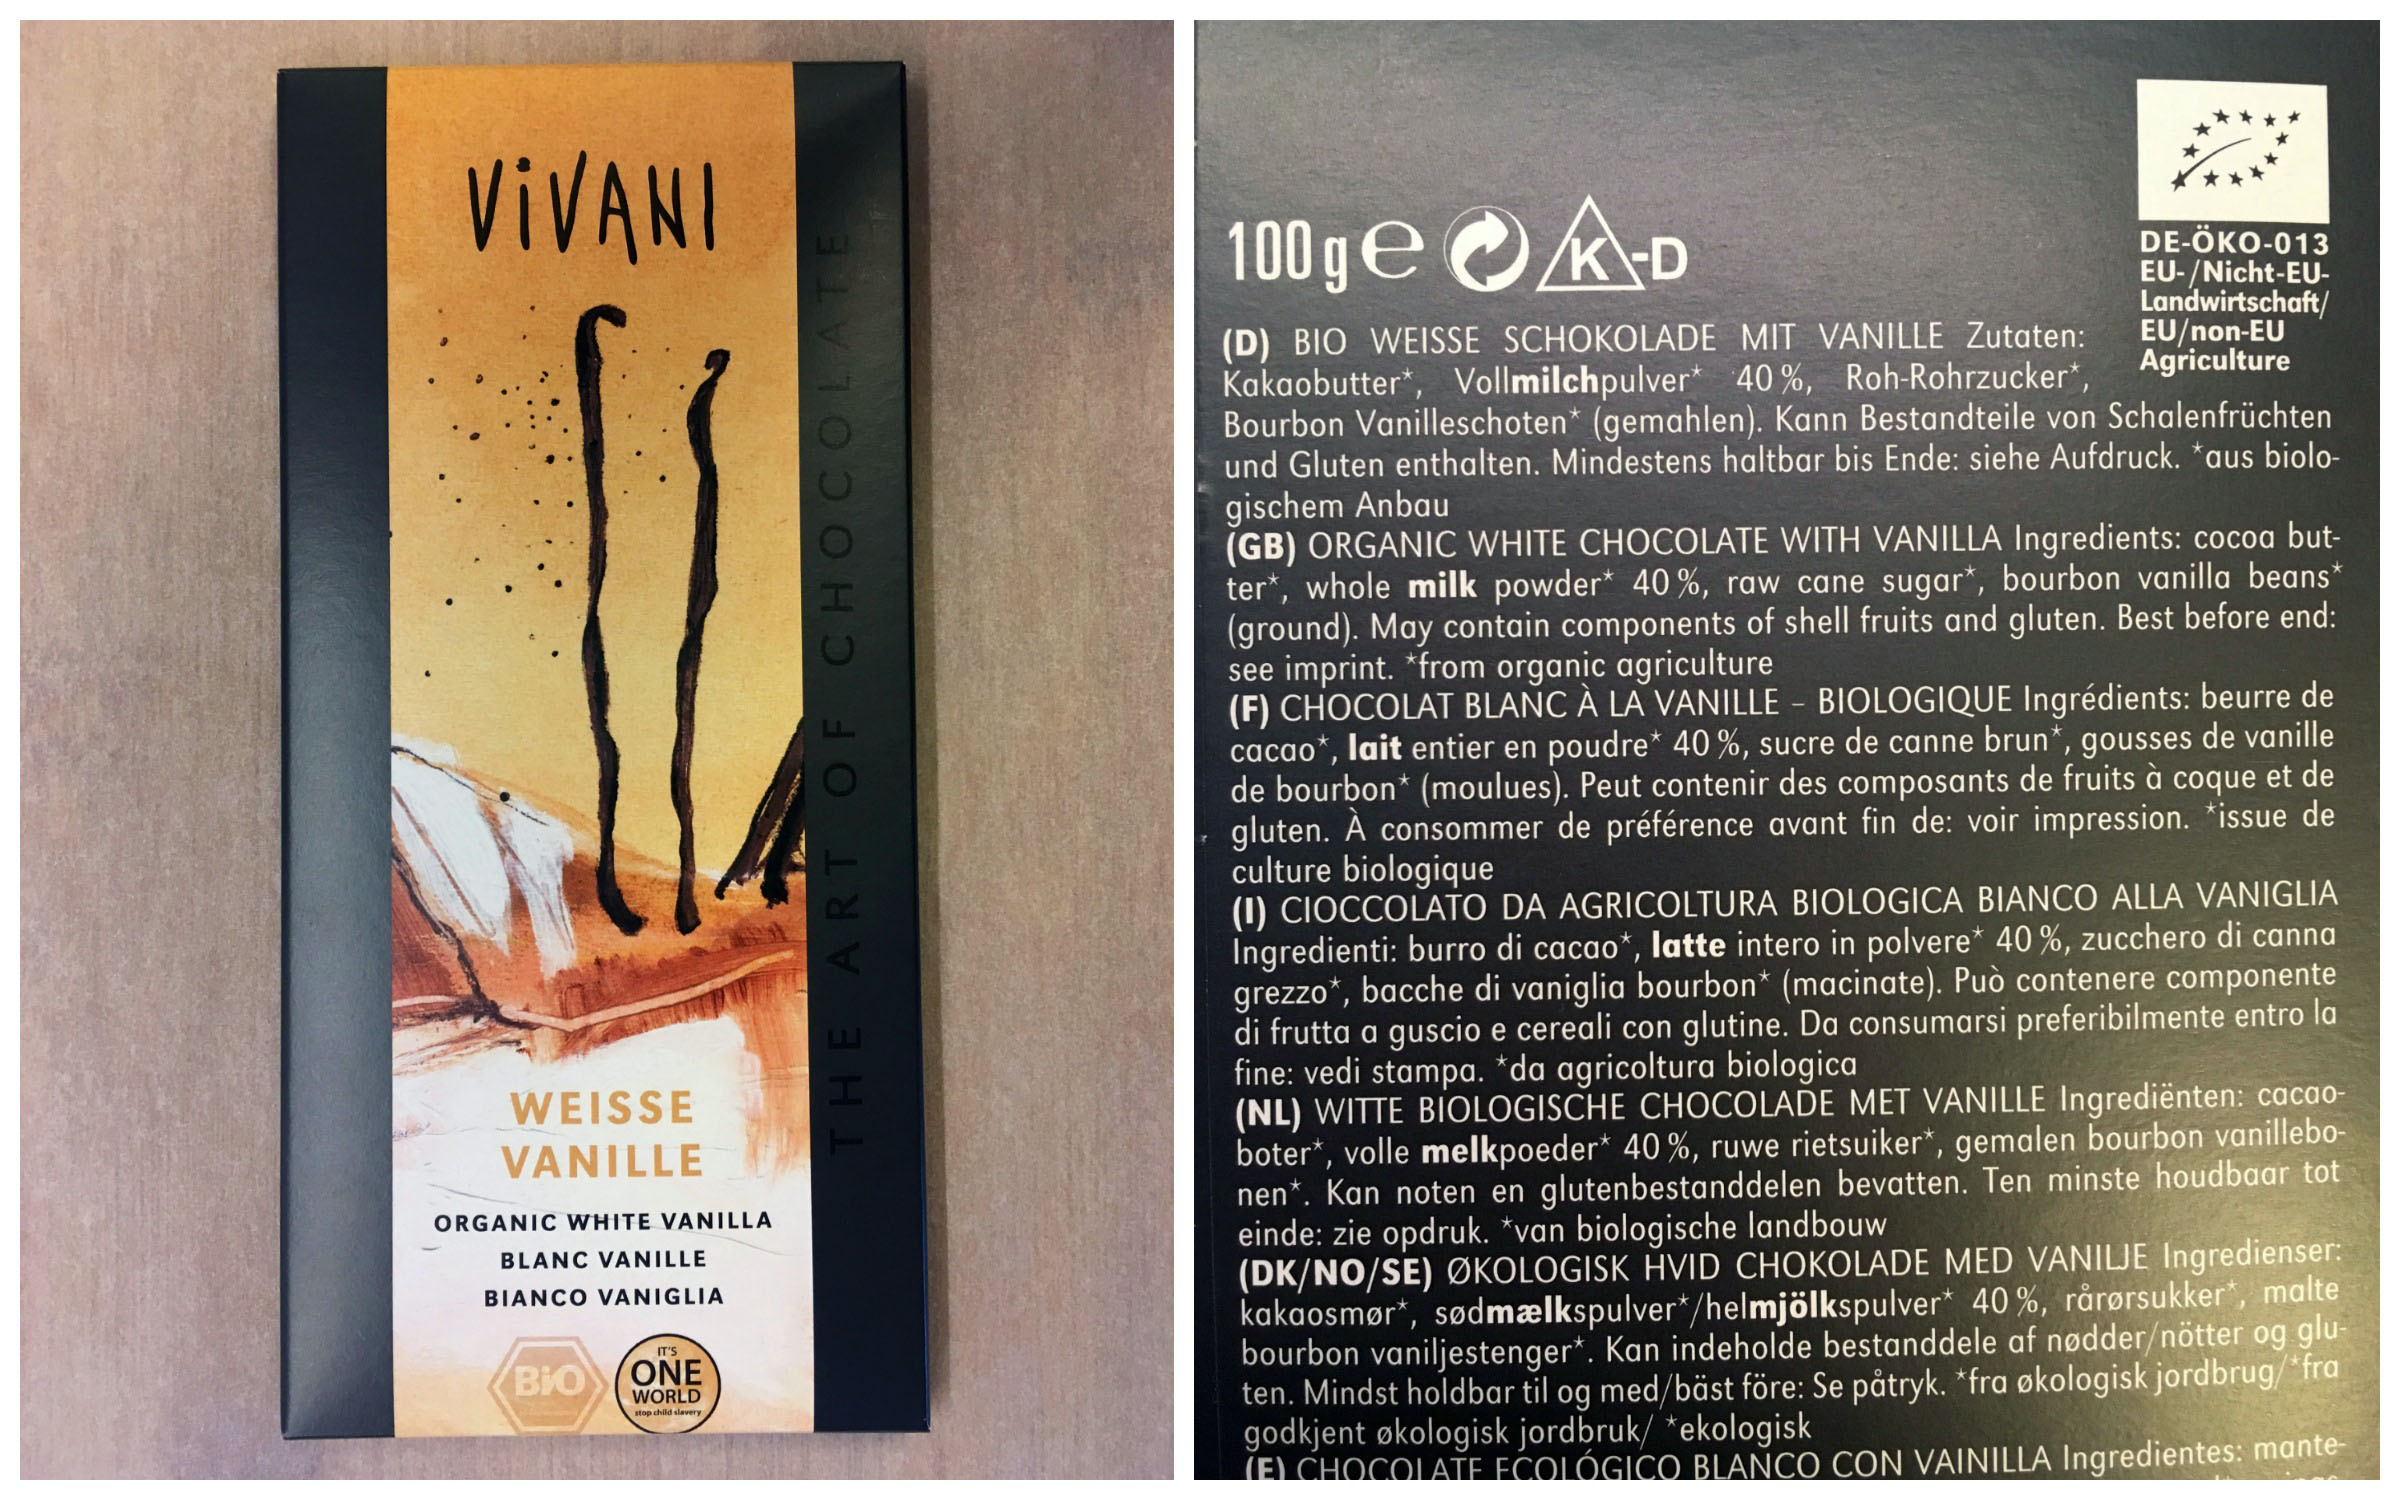 Vivani White Chocolate